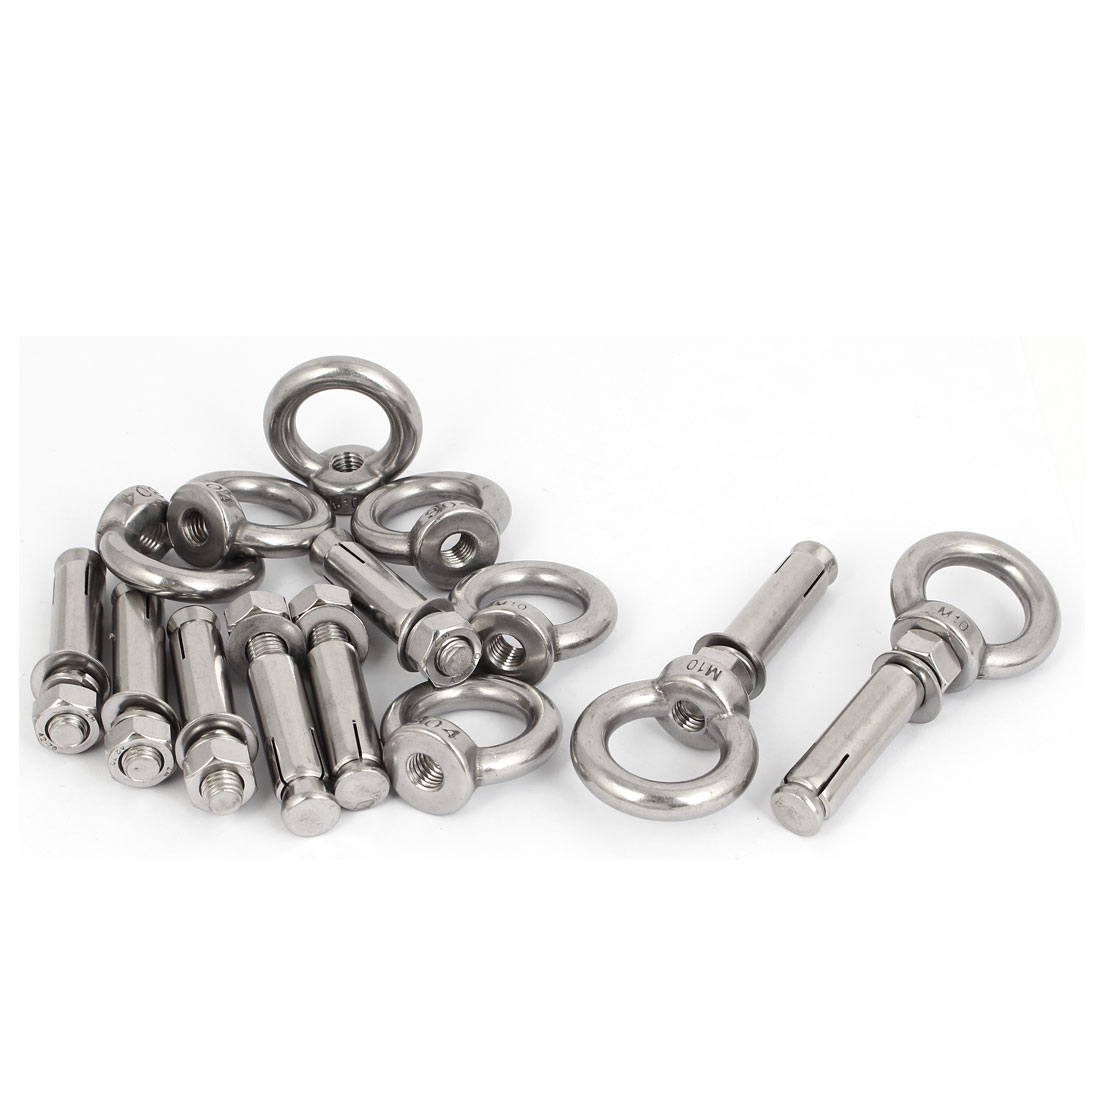 M10x70mm Wall 304 Stainless Steel Expansion Screws Closed Hook Anchor Bolts 8pcs